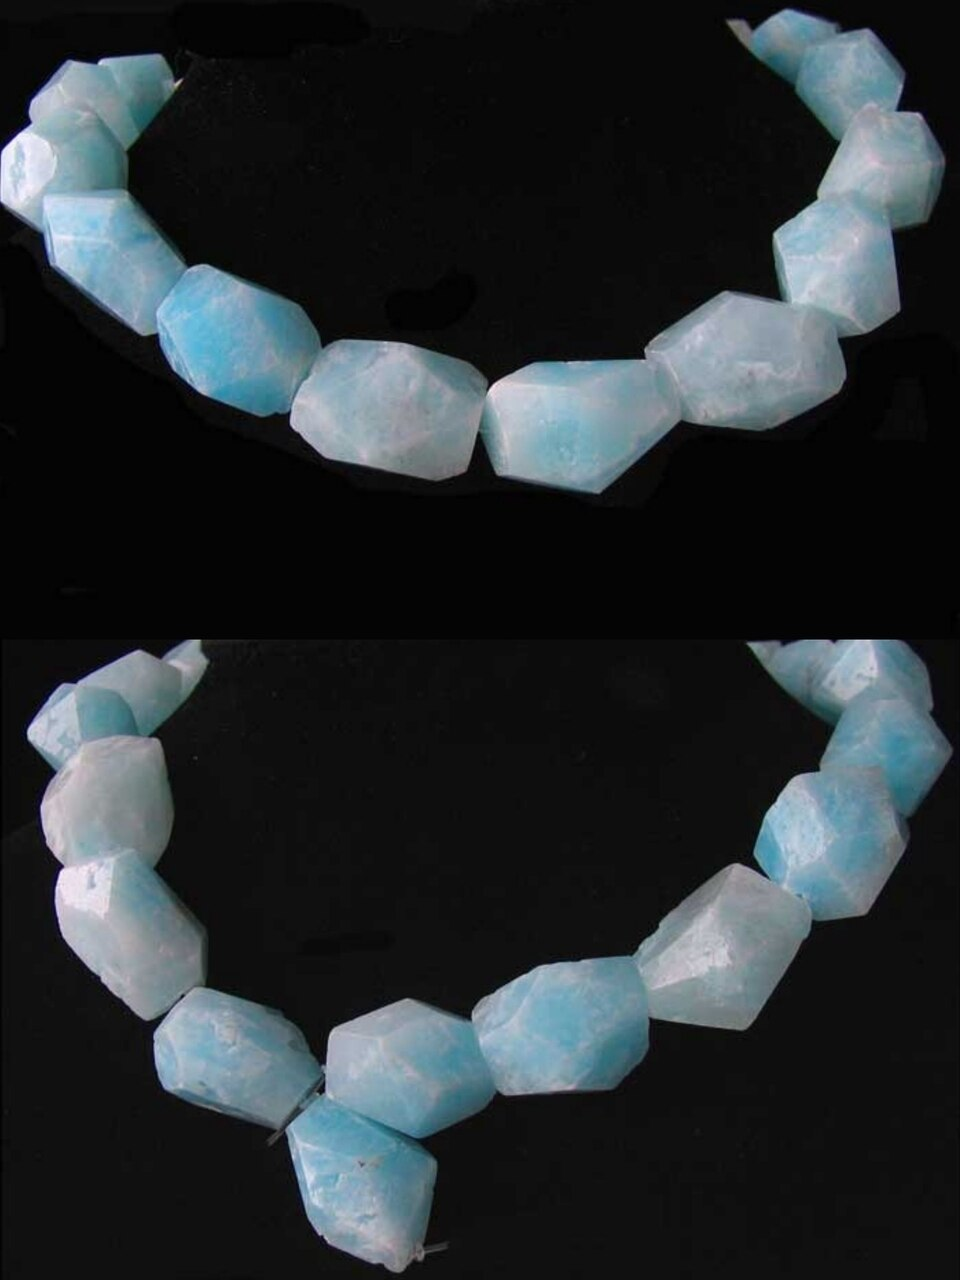 732cts Hemimorphite Faceted Nugget Bead Strand 110390C - PremiumBead Primary Image 1